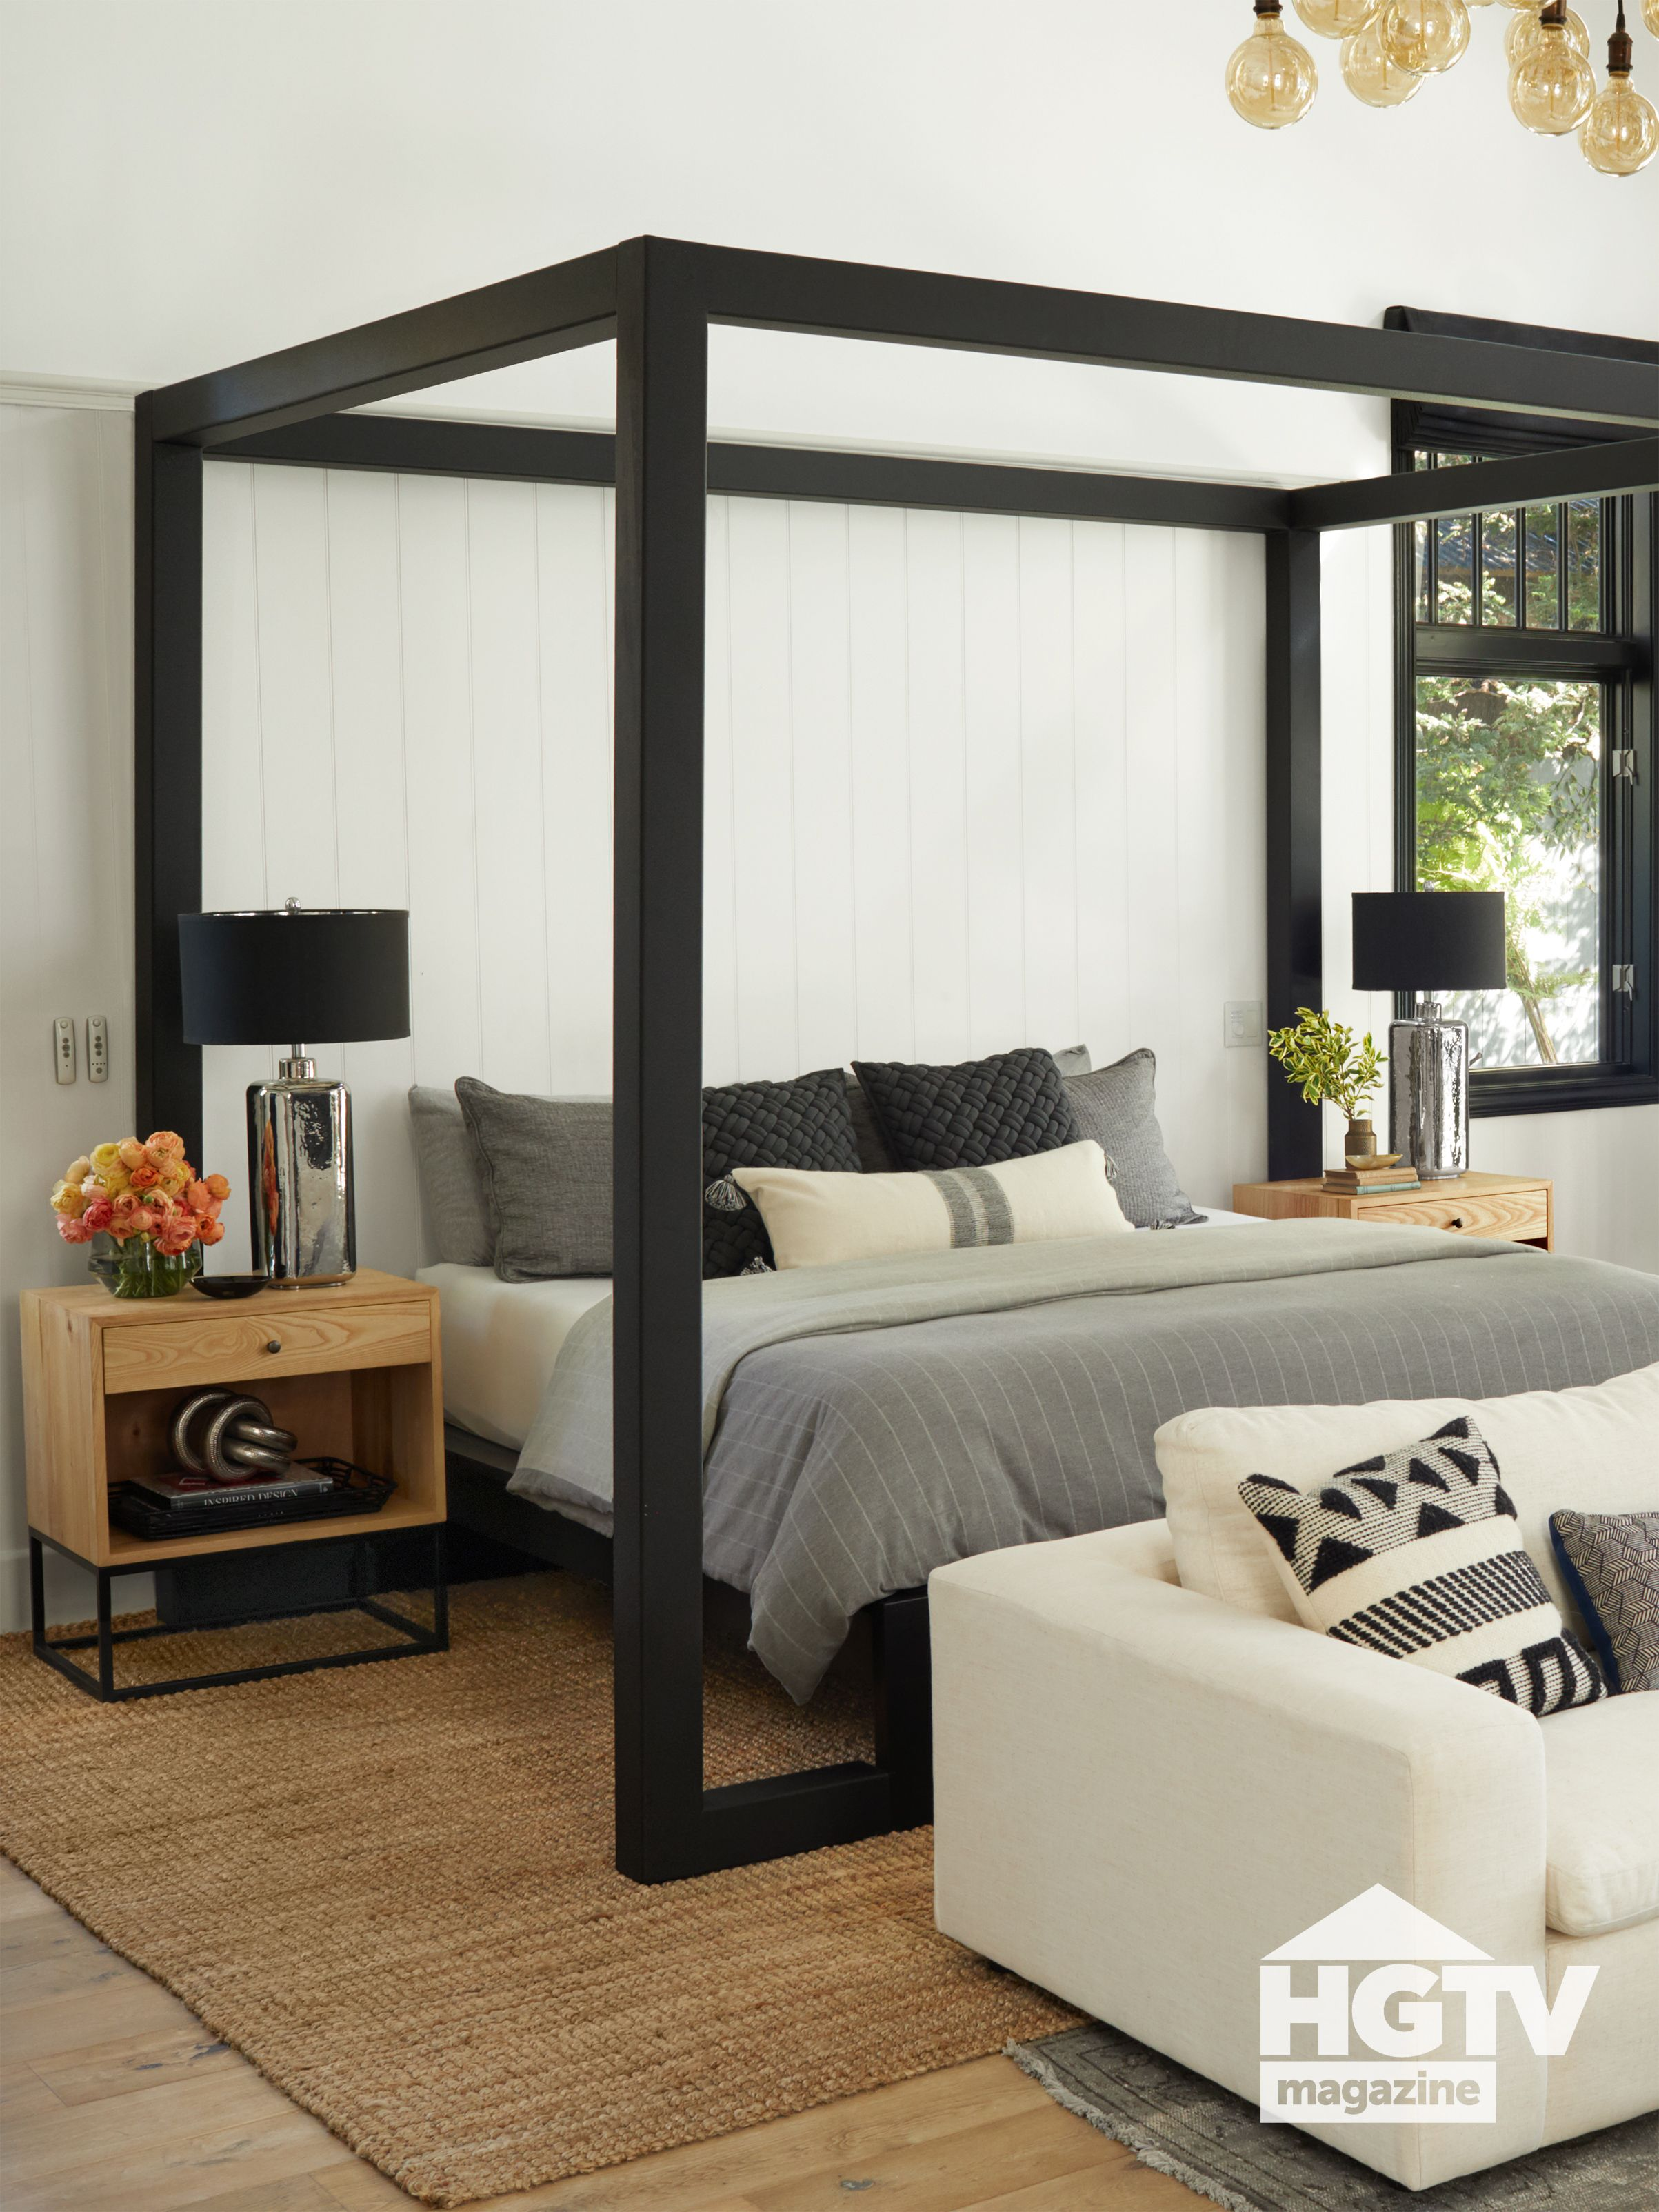 canopy bed featured in hgtv magazine